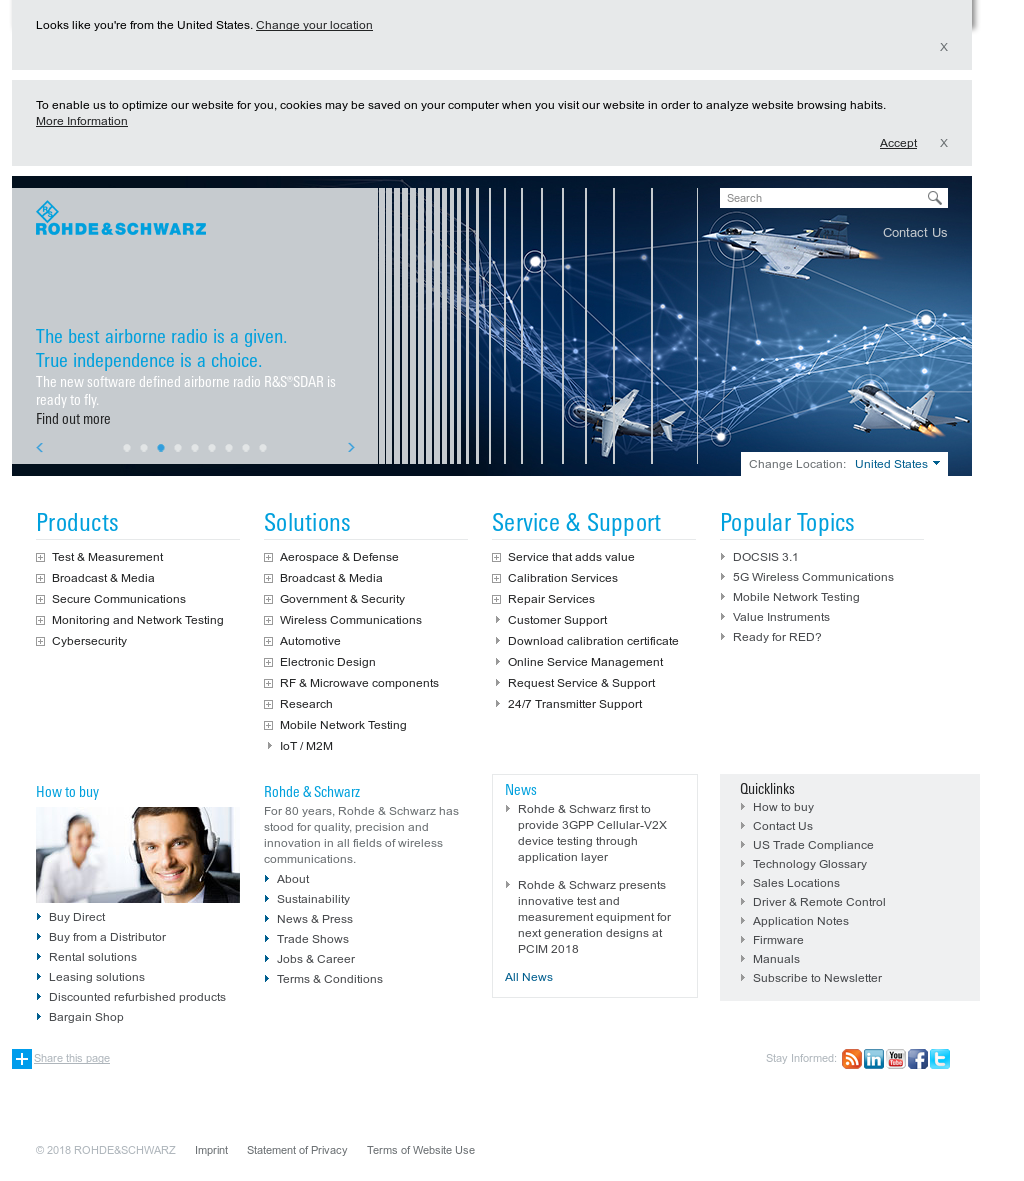 Rohde & Schwarz Competitors, Revenue and Employees - Owler Company